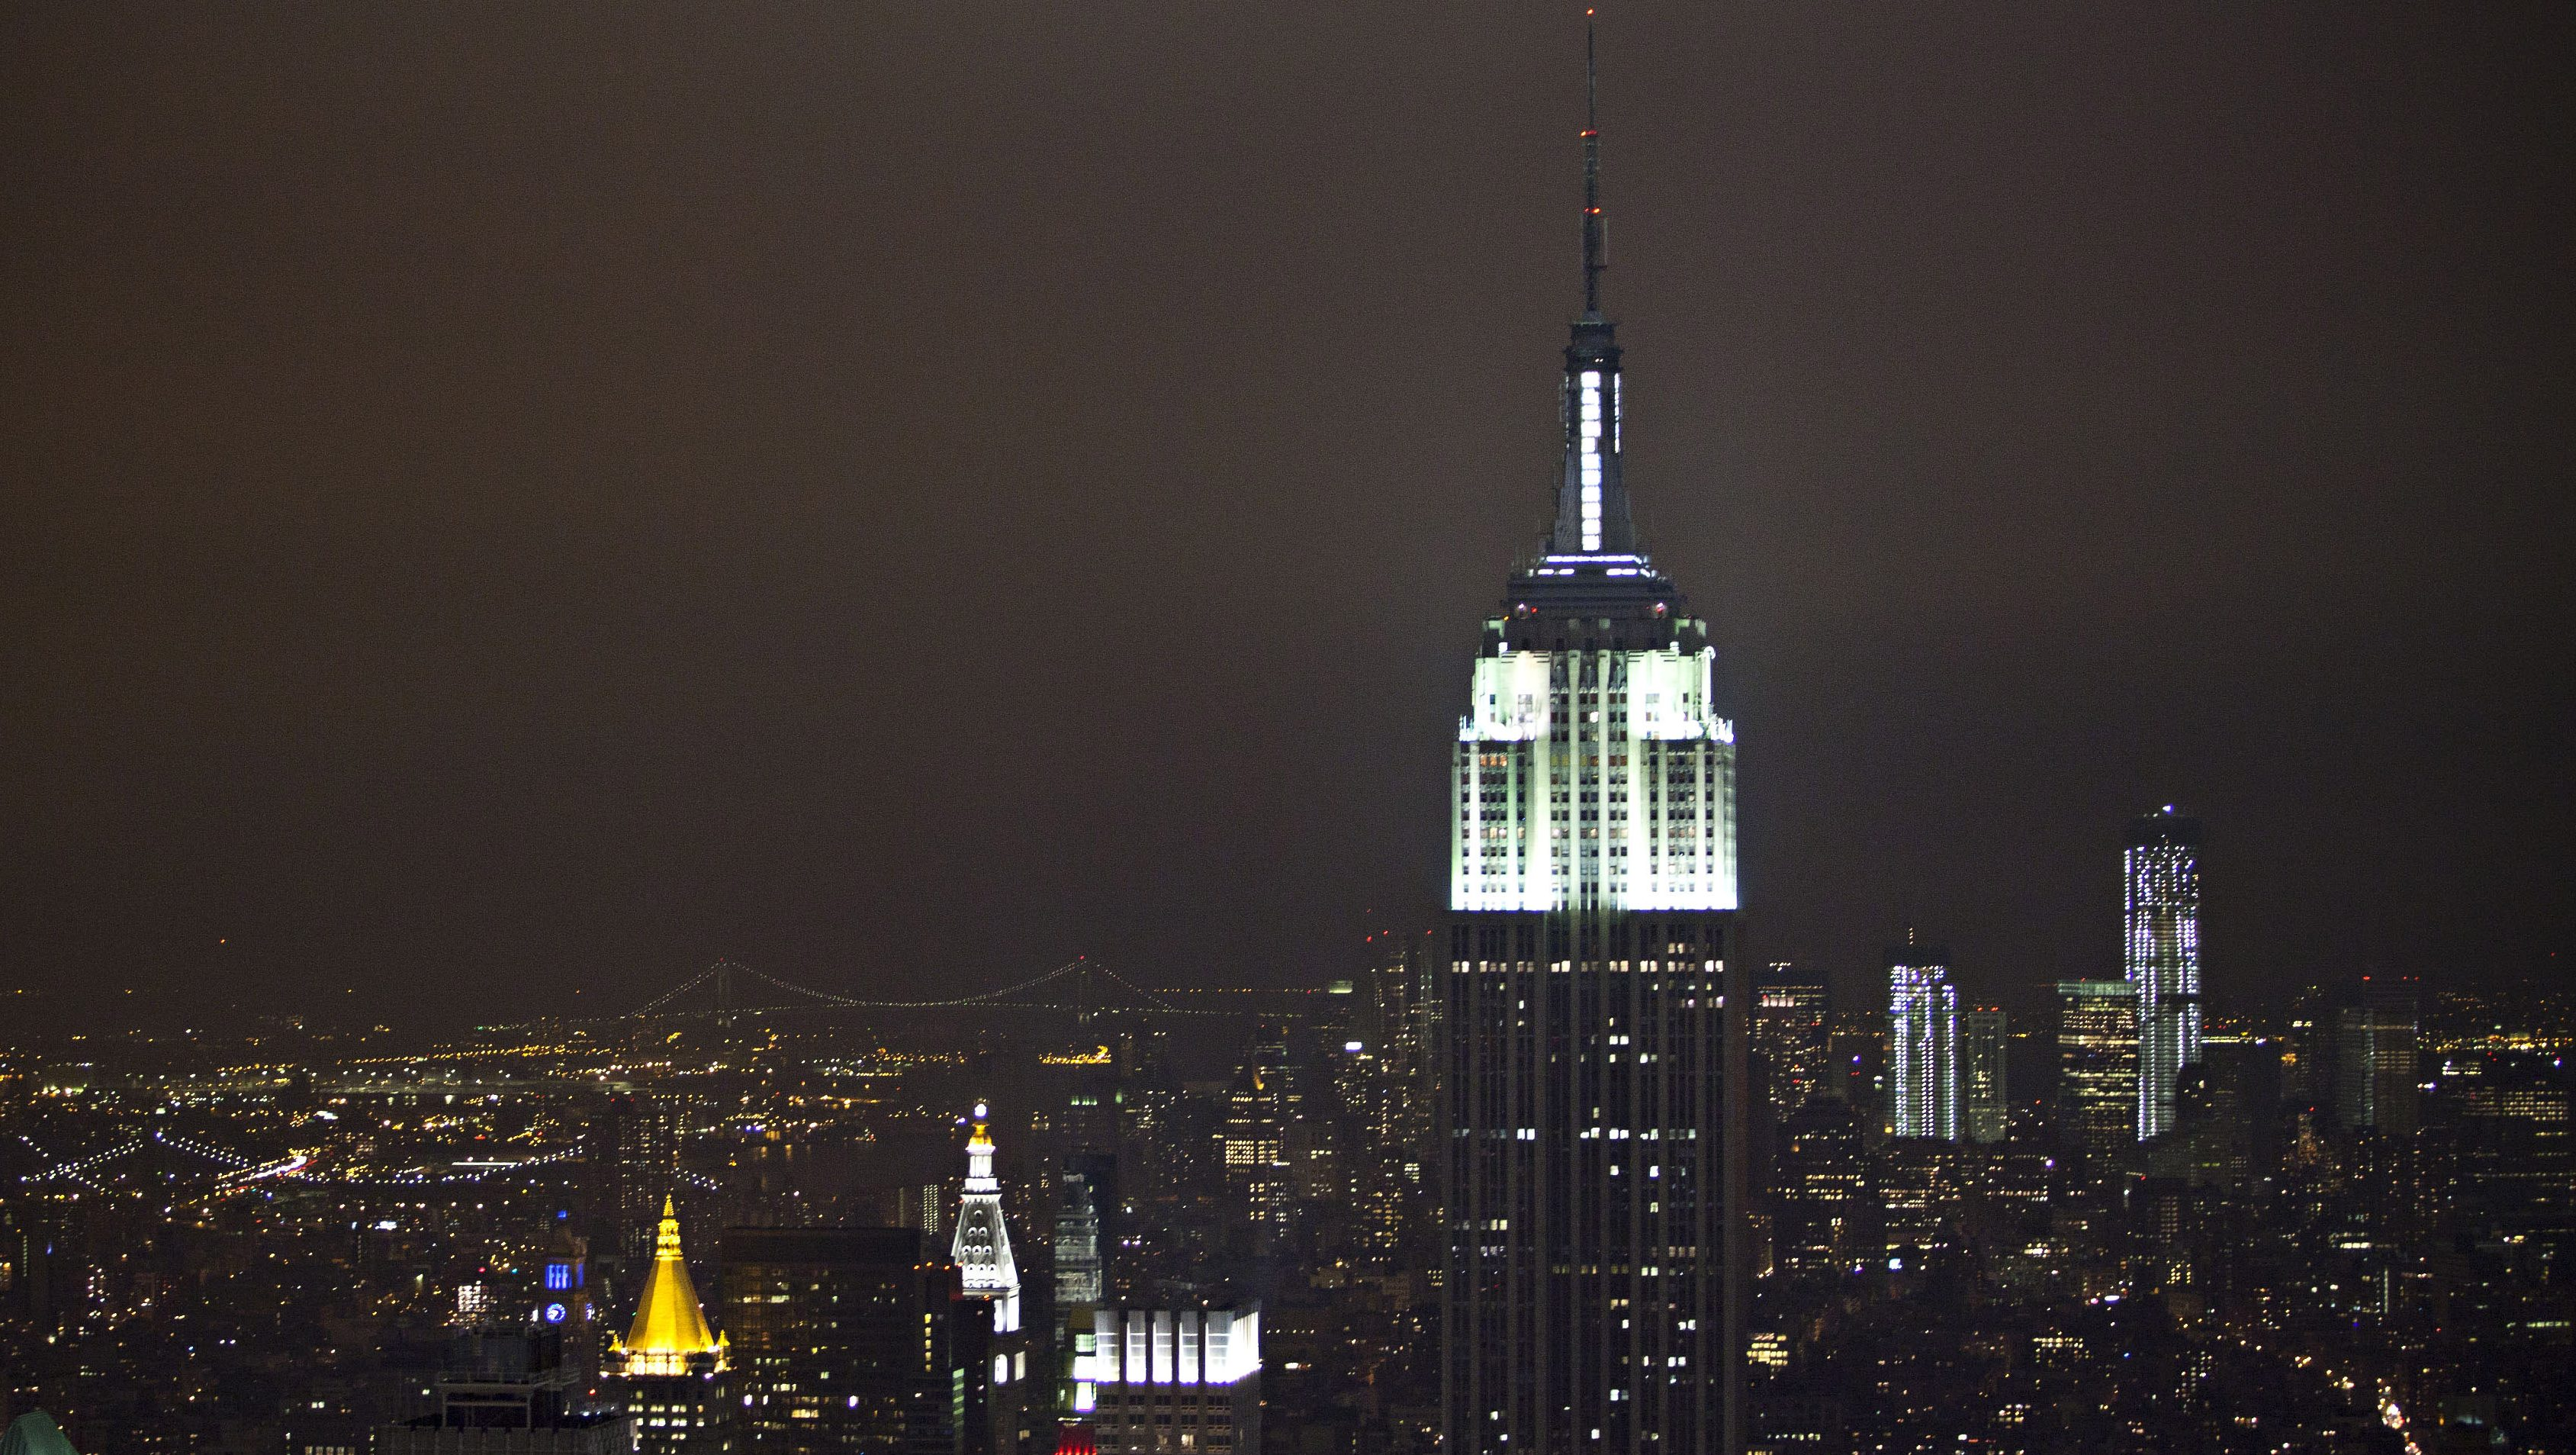 The Empire State Building is seen with the lights switched back on after participating in Earth Hour, in New York, March 31, 2012. Lights started going off around the world on Saturday in a show of support for renewable energy. REUTERS/Andrew Burton (UNITED STATES - Tags: ENVIRONMENT SOCIETY) - RTR306JF